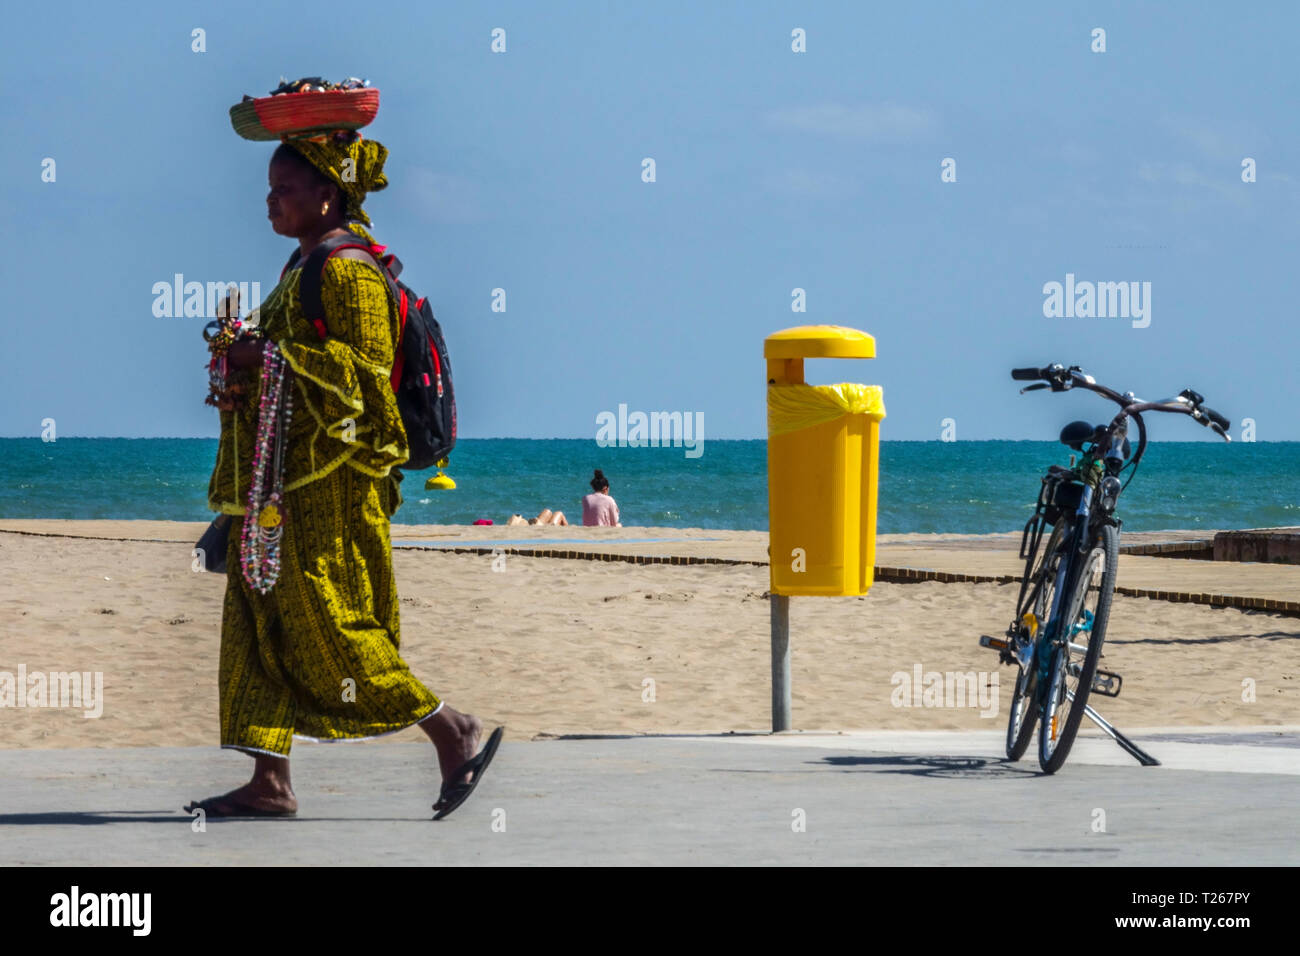 African woman in traditional clothes selling small jewelry on the beach, Valencia Malvarrosa Spain - Stock Image